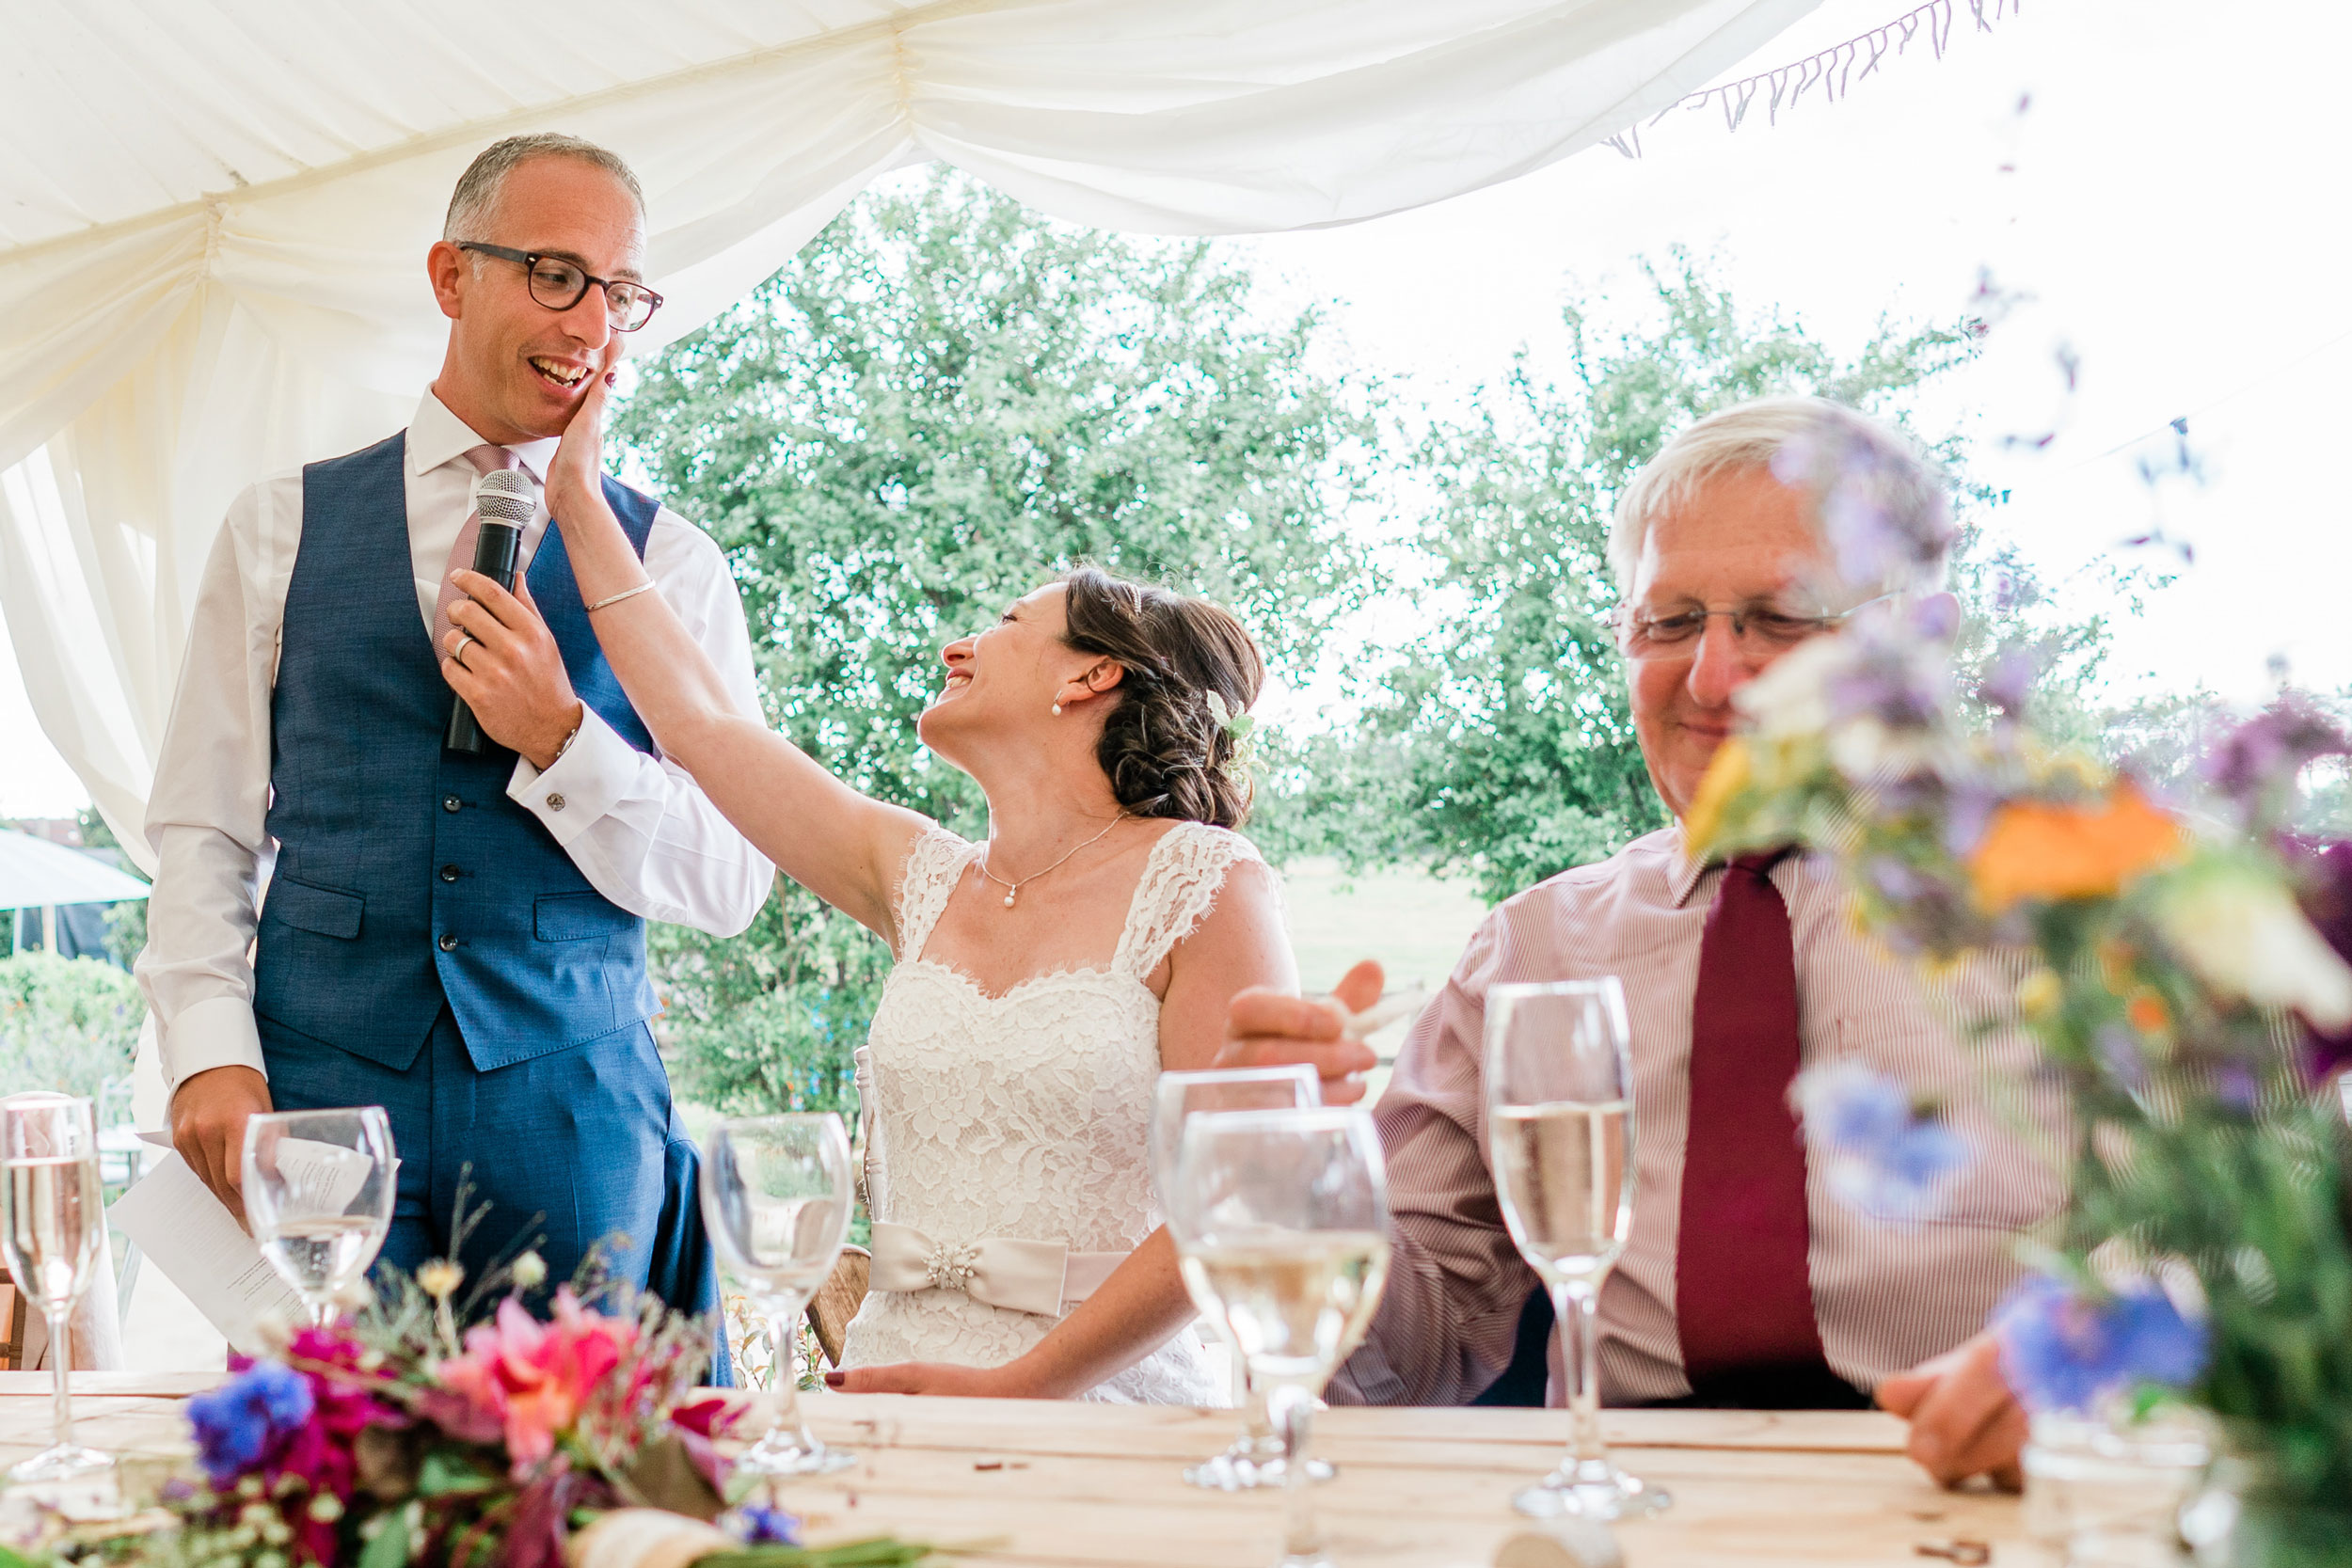 duncan-mein-photography-wedding-photographer-bristol-portfolio-116